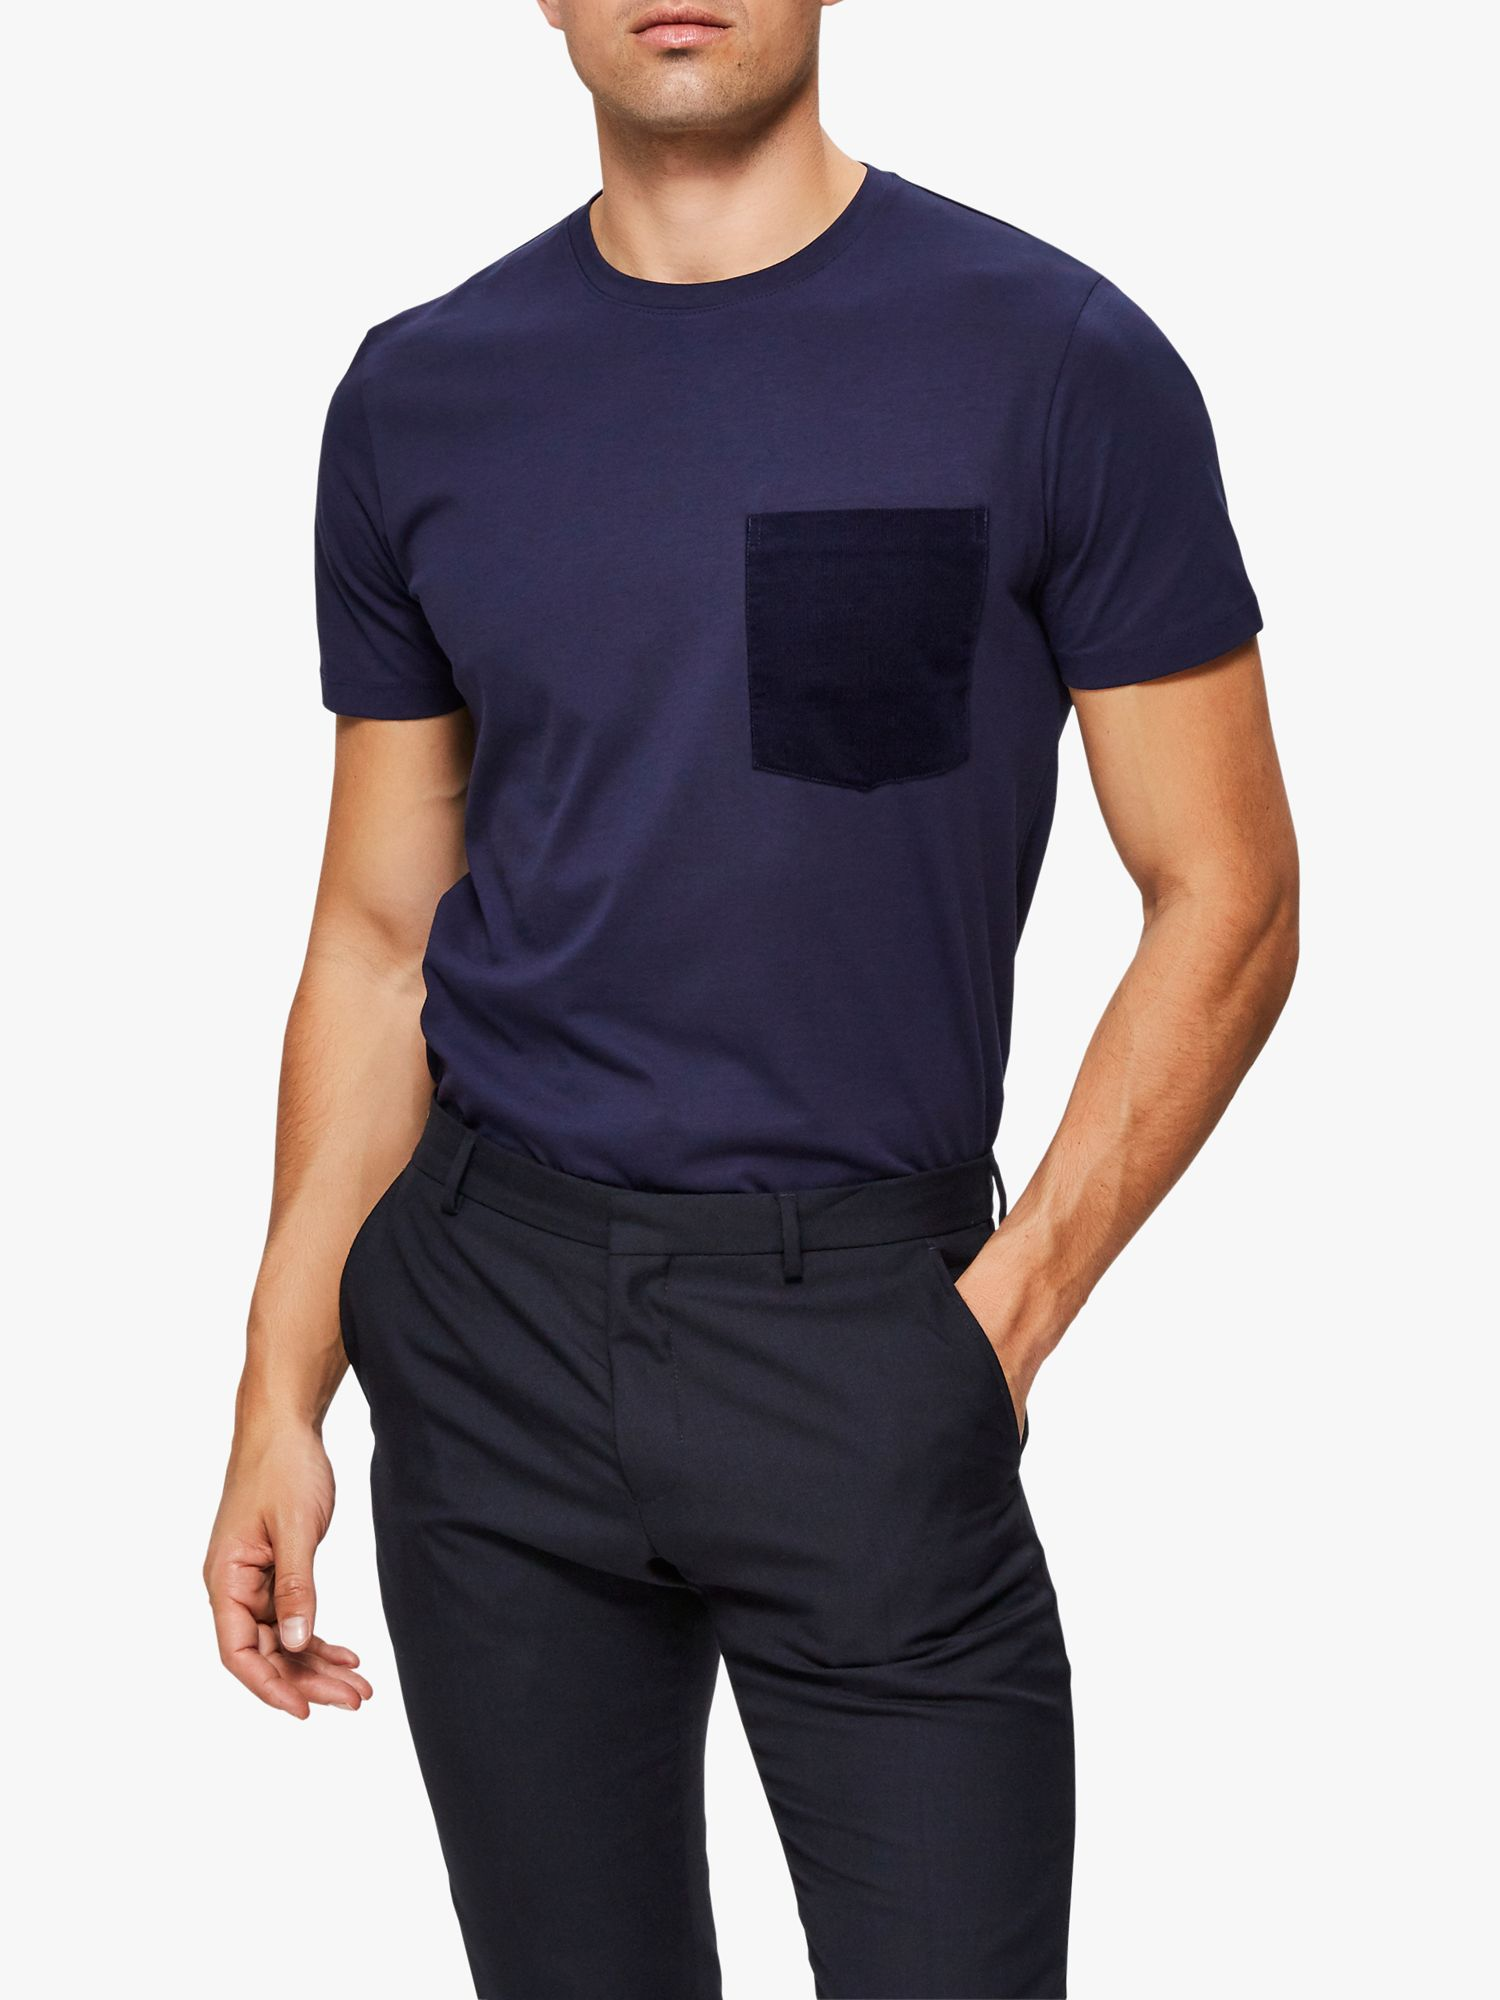 Selected Homme SELECTED HOMME Vance O-Neck T-Shirt